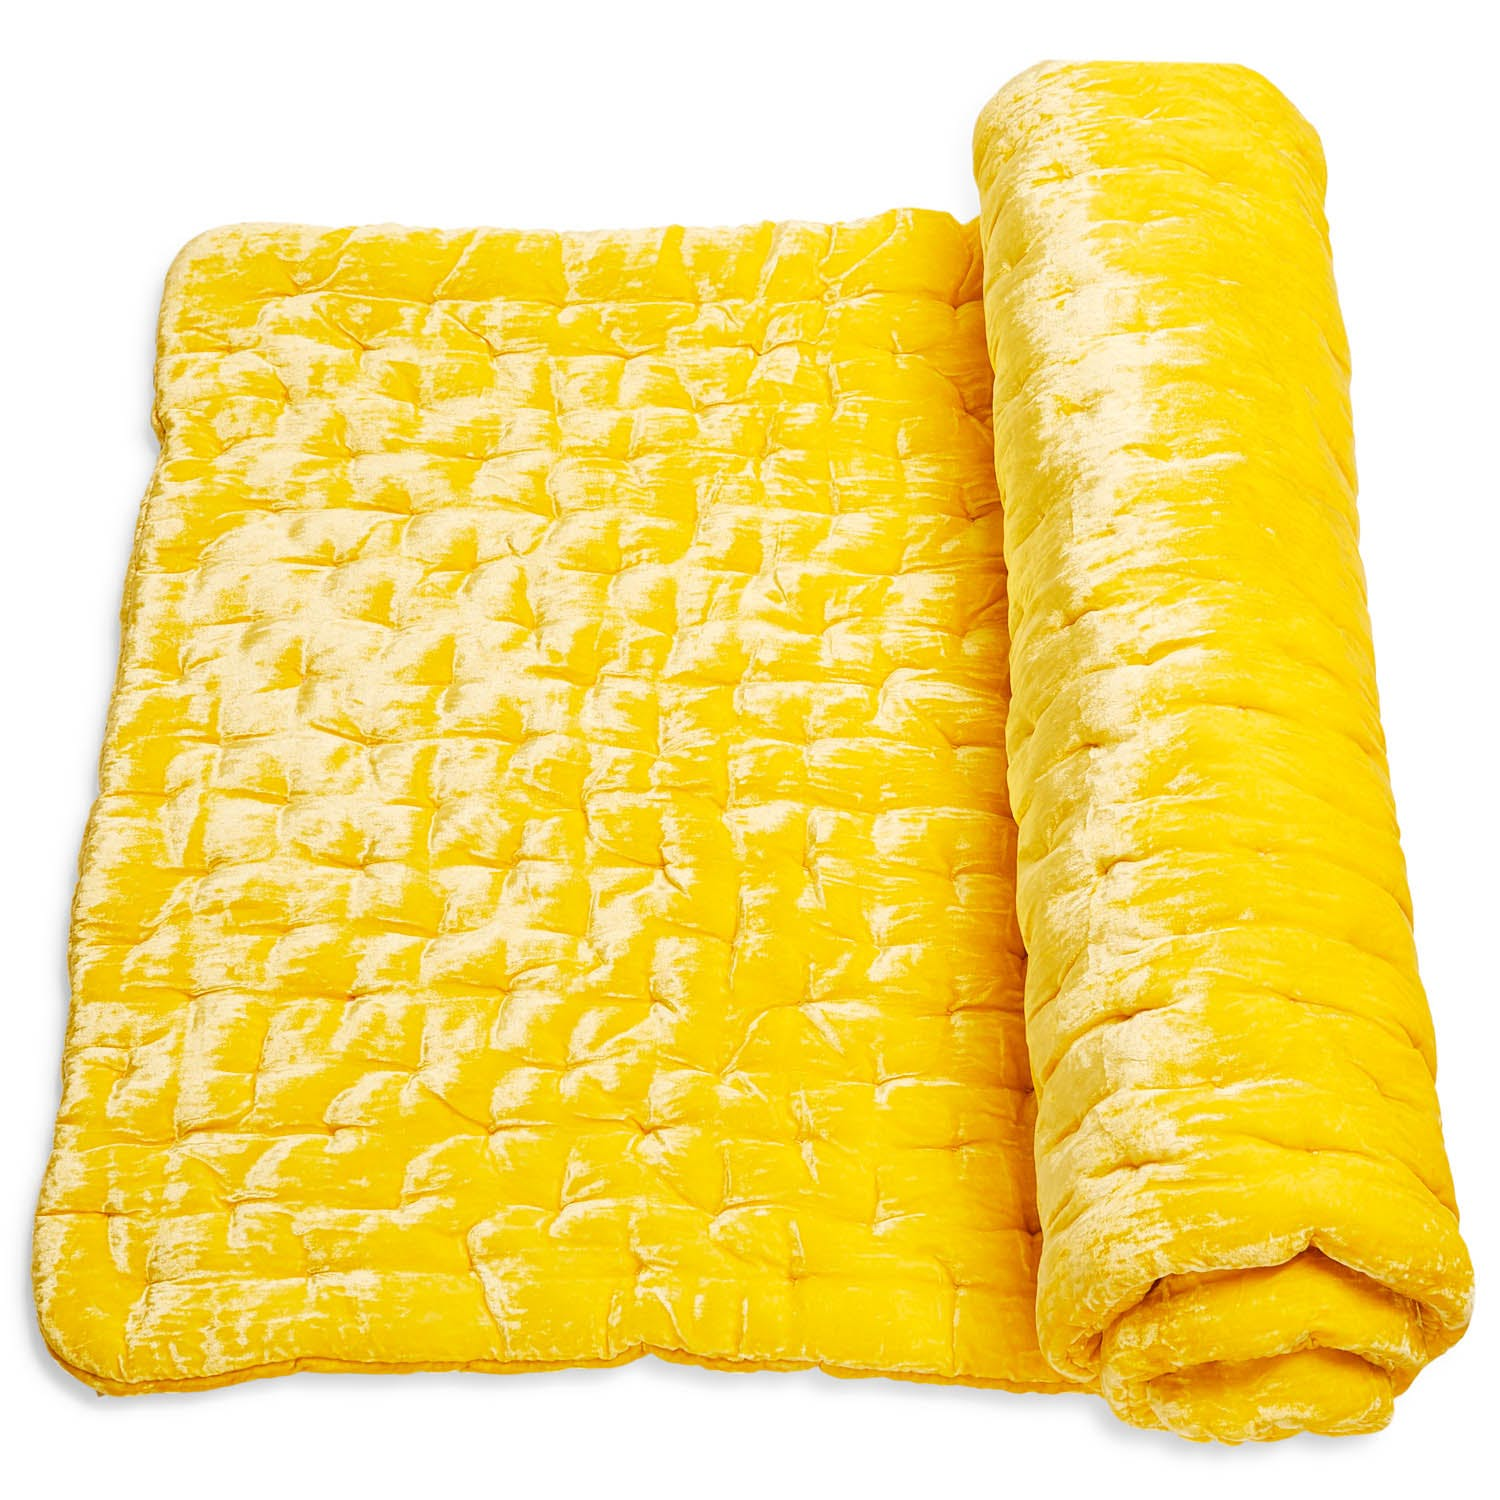 abcDNA Luminous Citron Velvet Meditation Mat